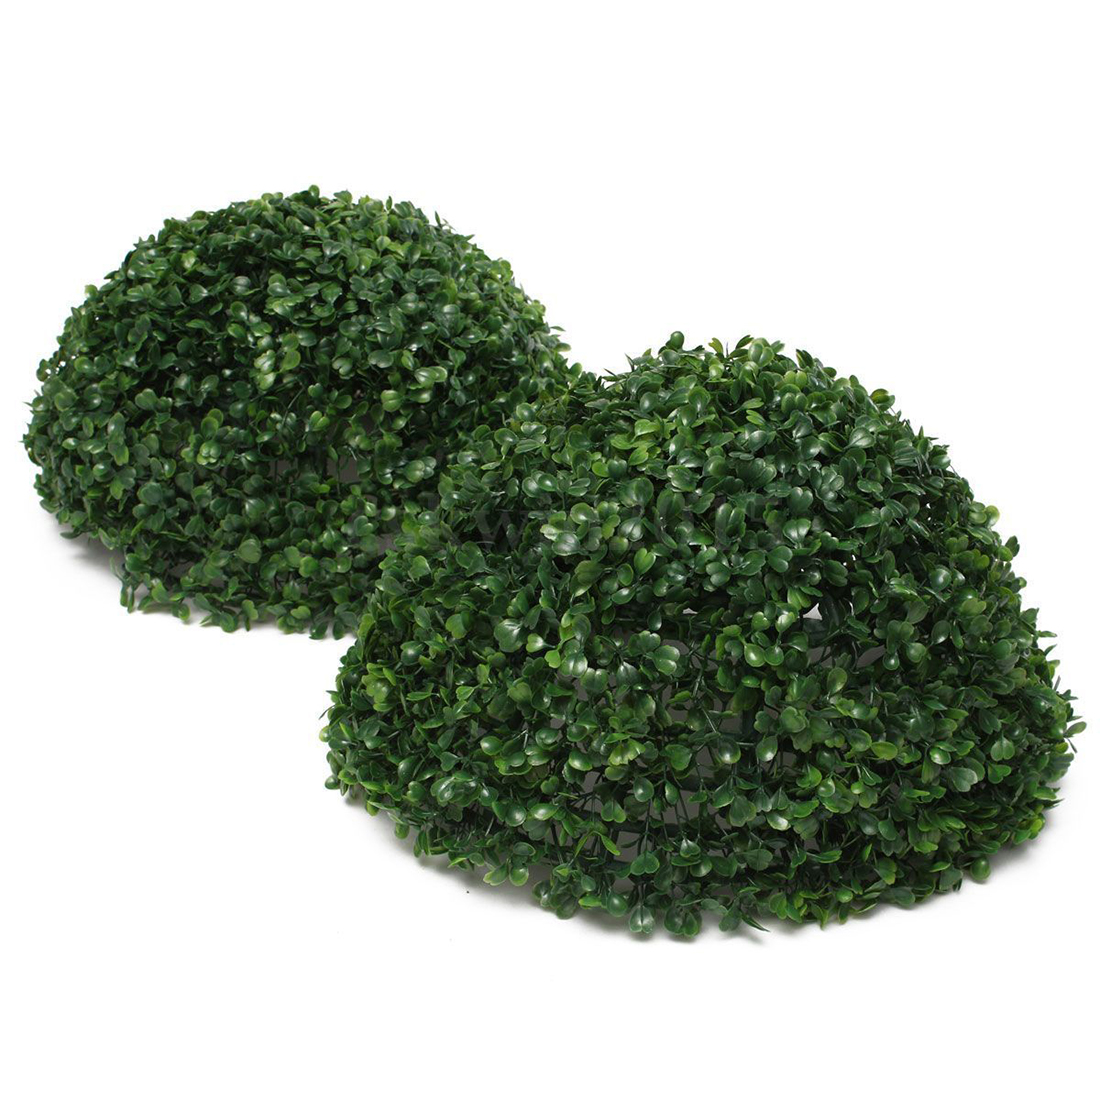 Practical Boutique 35cm Plastic Conifer Topiary Tree Green Leaf Effect Ball Hanging Home Decor